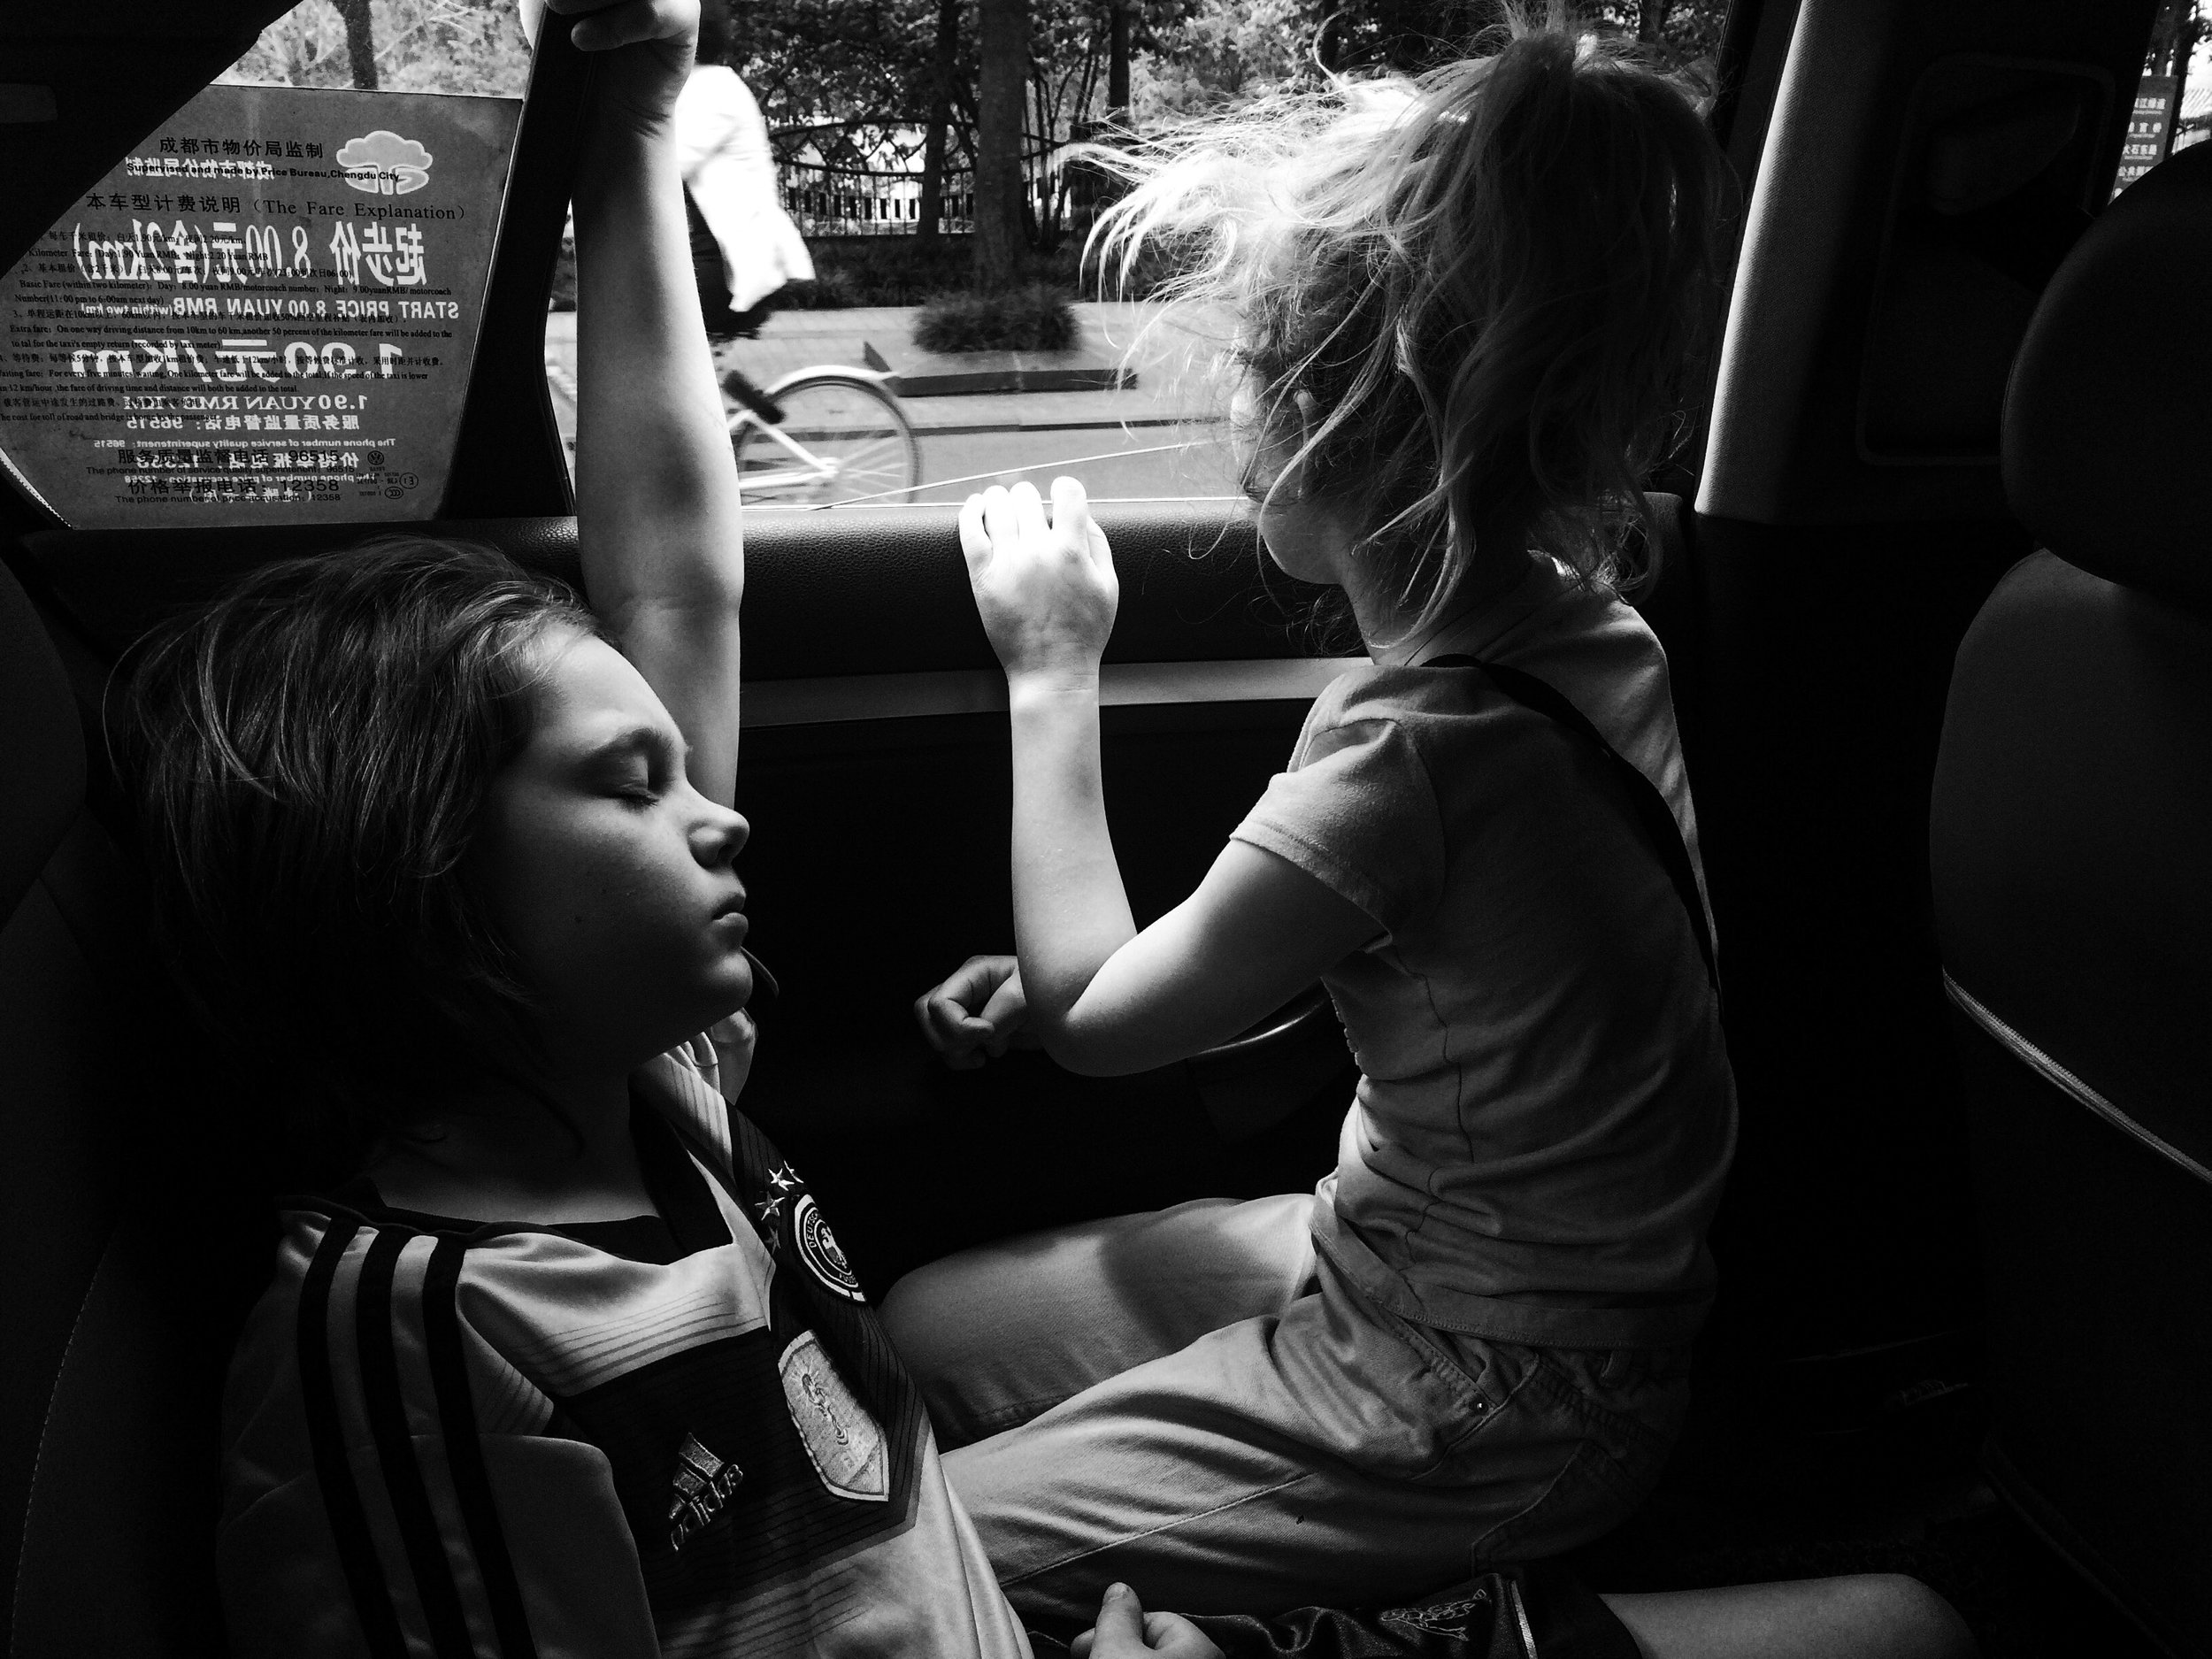 Taxi rides : not the safest, but the best. Judah loves the wind in his hair, and Eden, our window watcher, loves the show.